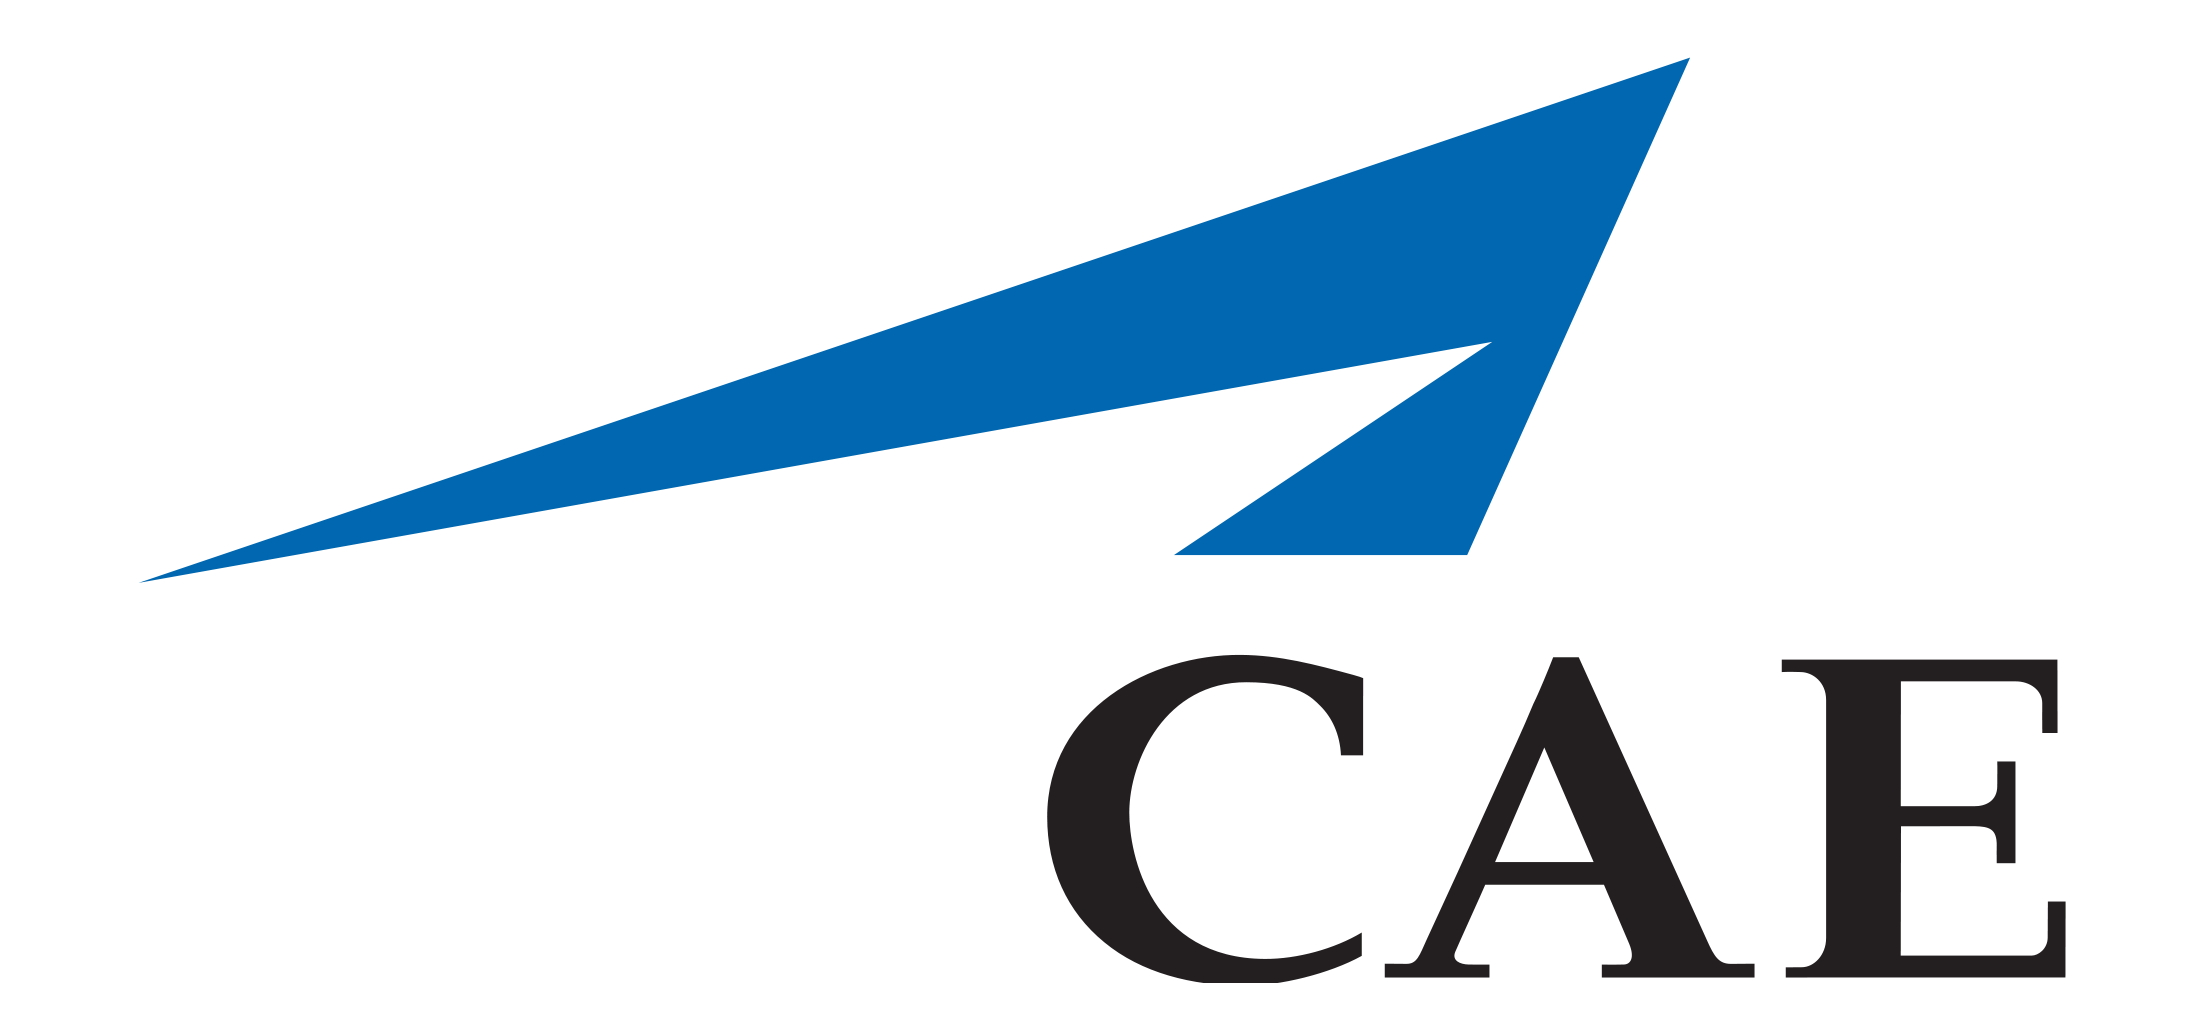 Cae Parc Aviation Aviation Jobs Amp Aviation Support Experts